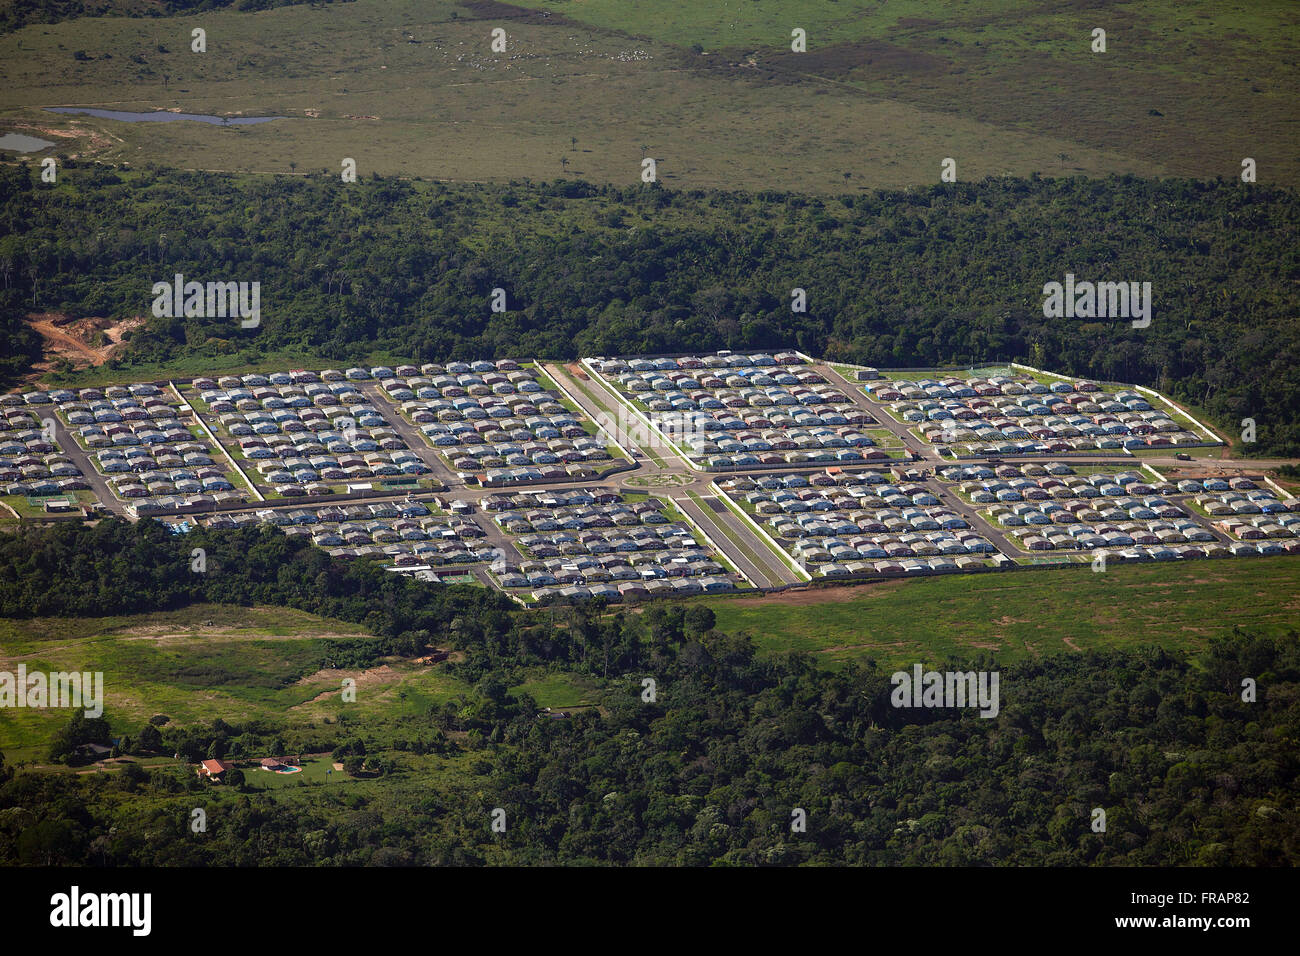 Aerial view of patio from auto industry amid vegetation - Stock Image